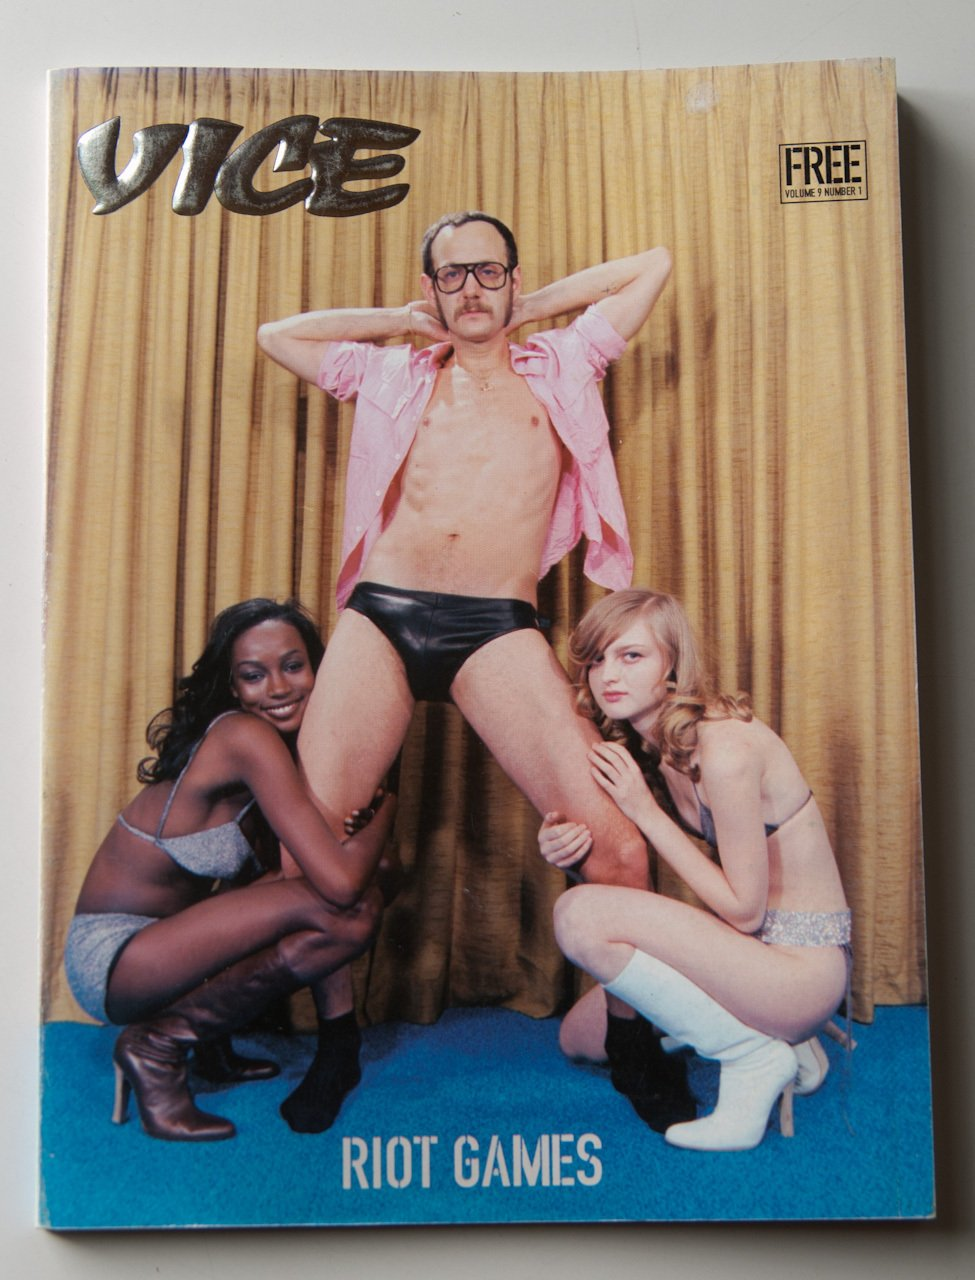 Terry Richardson Nude Archive 0017e4bf.jpg